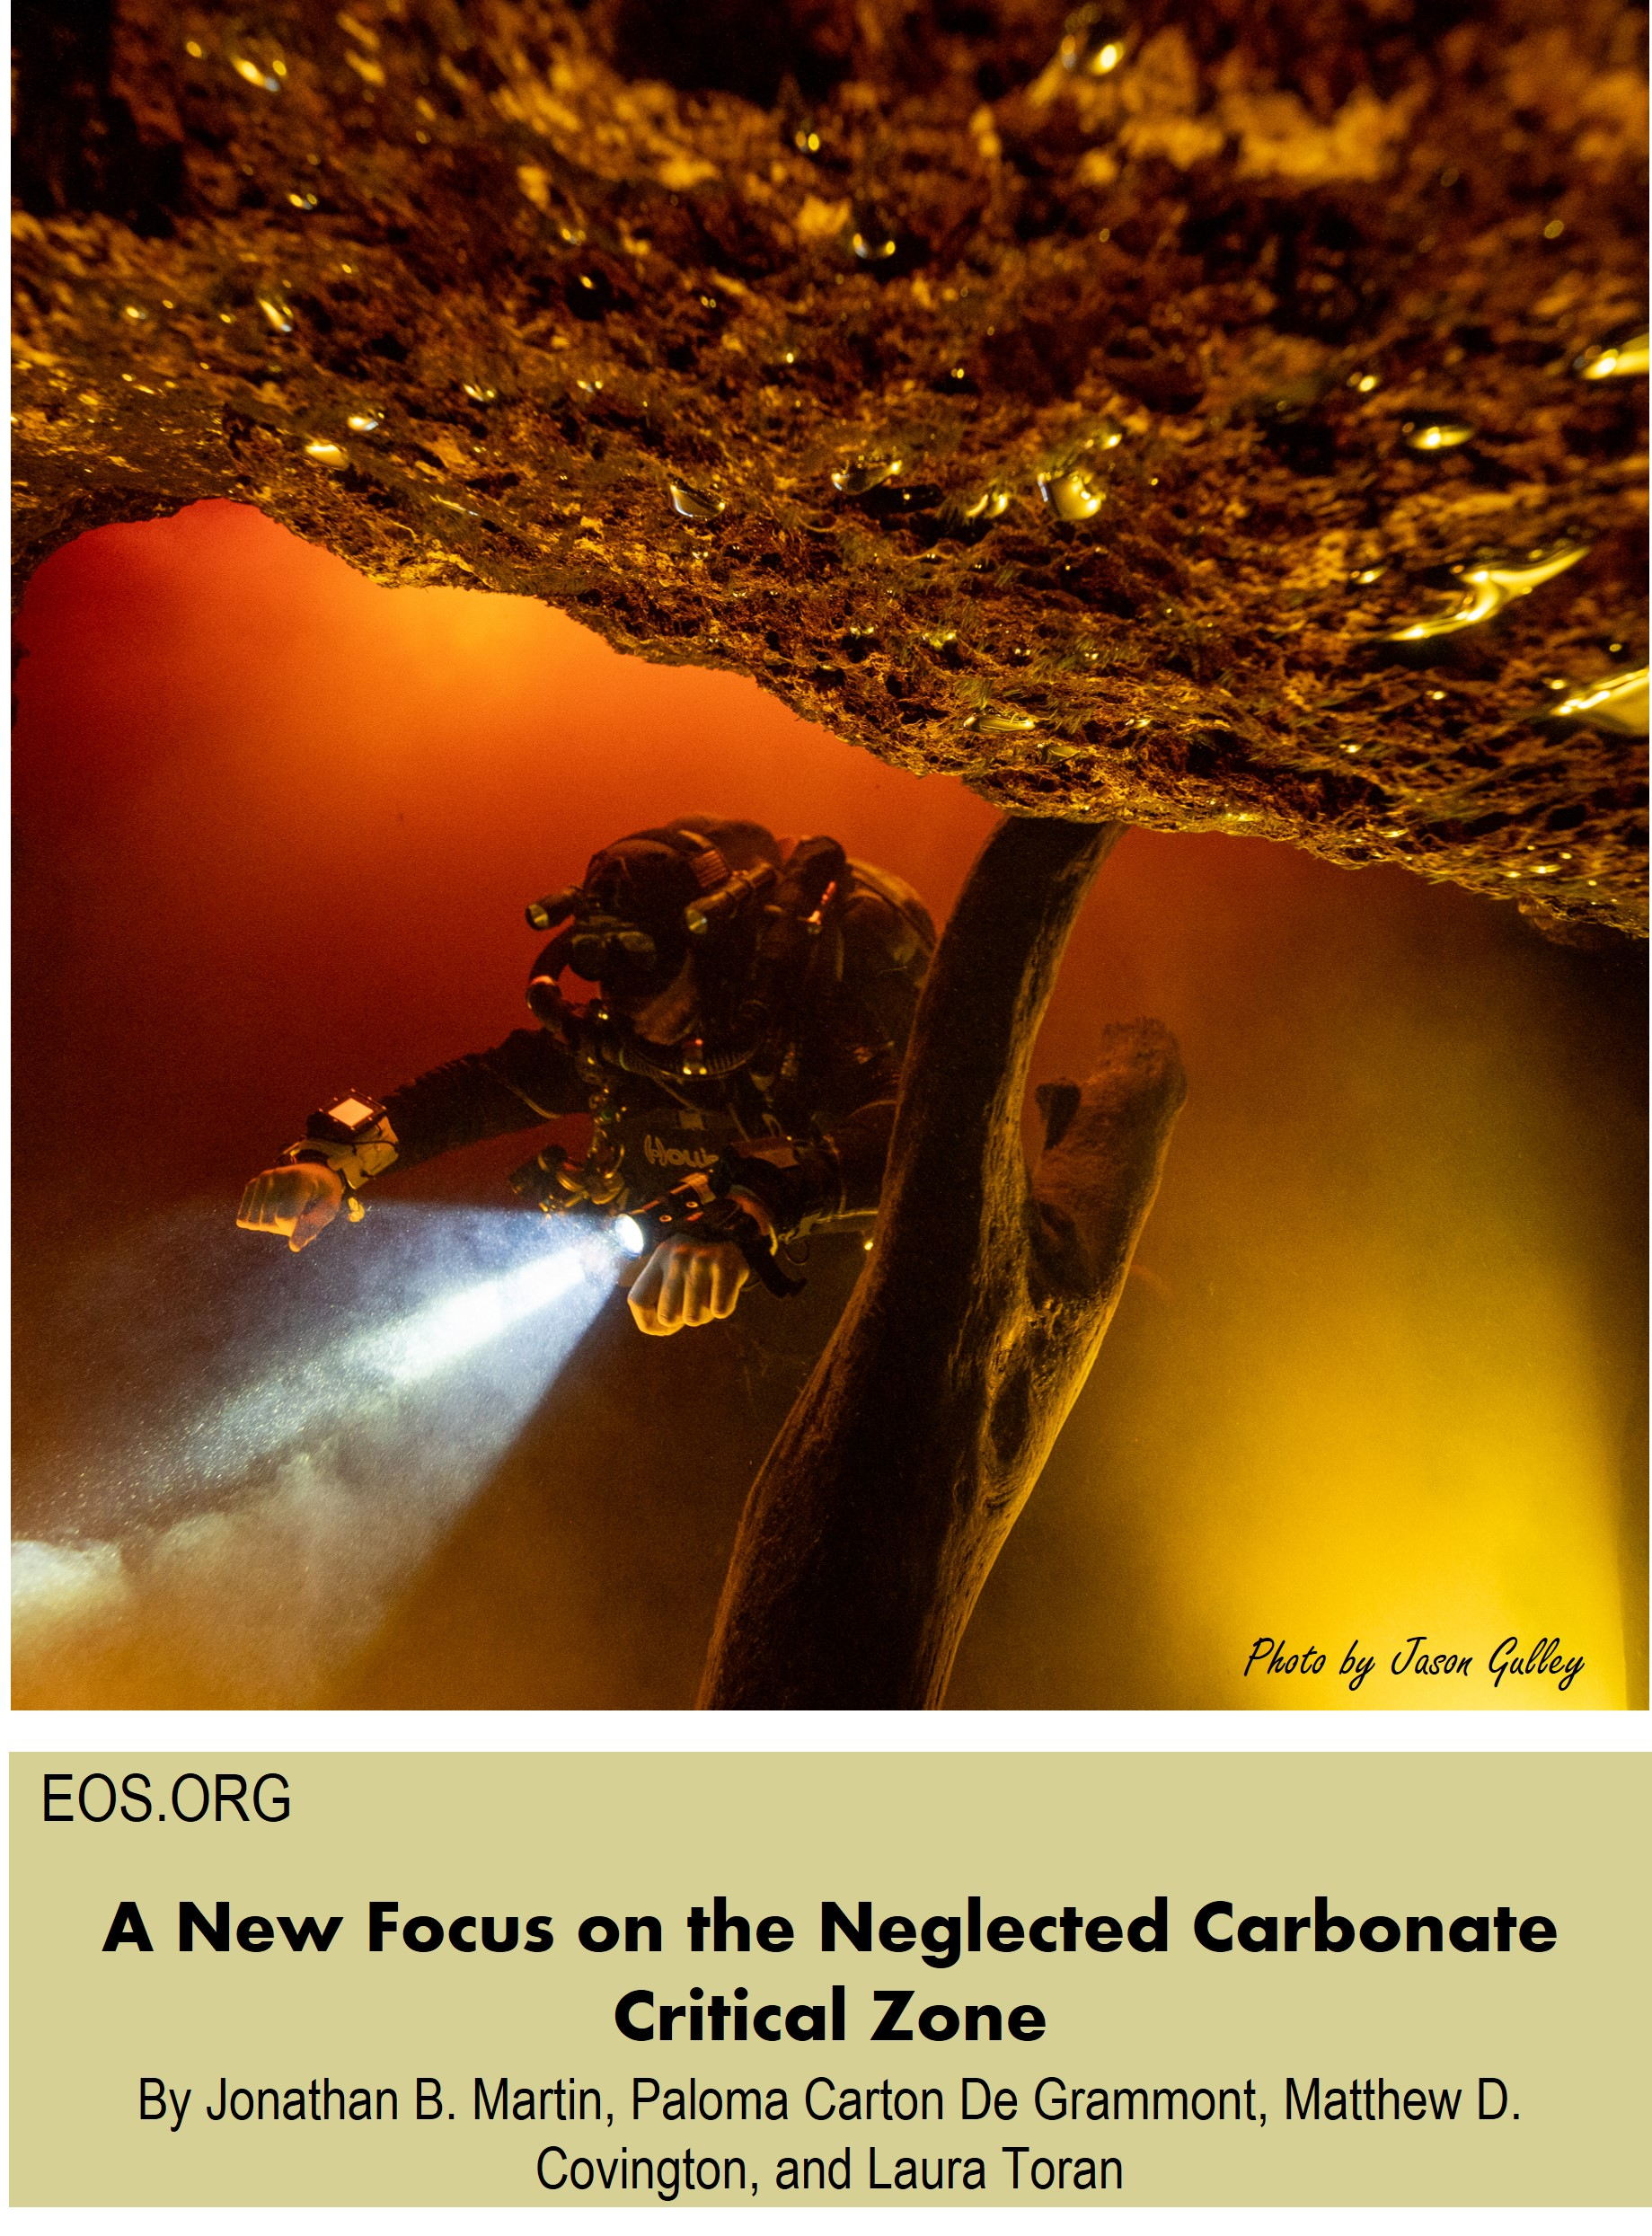 EOS publication: A New Focus on the Neglected Carbonate Critical Zone